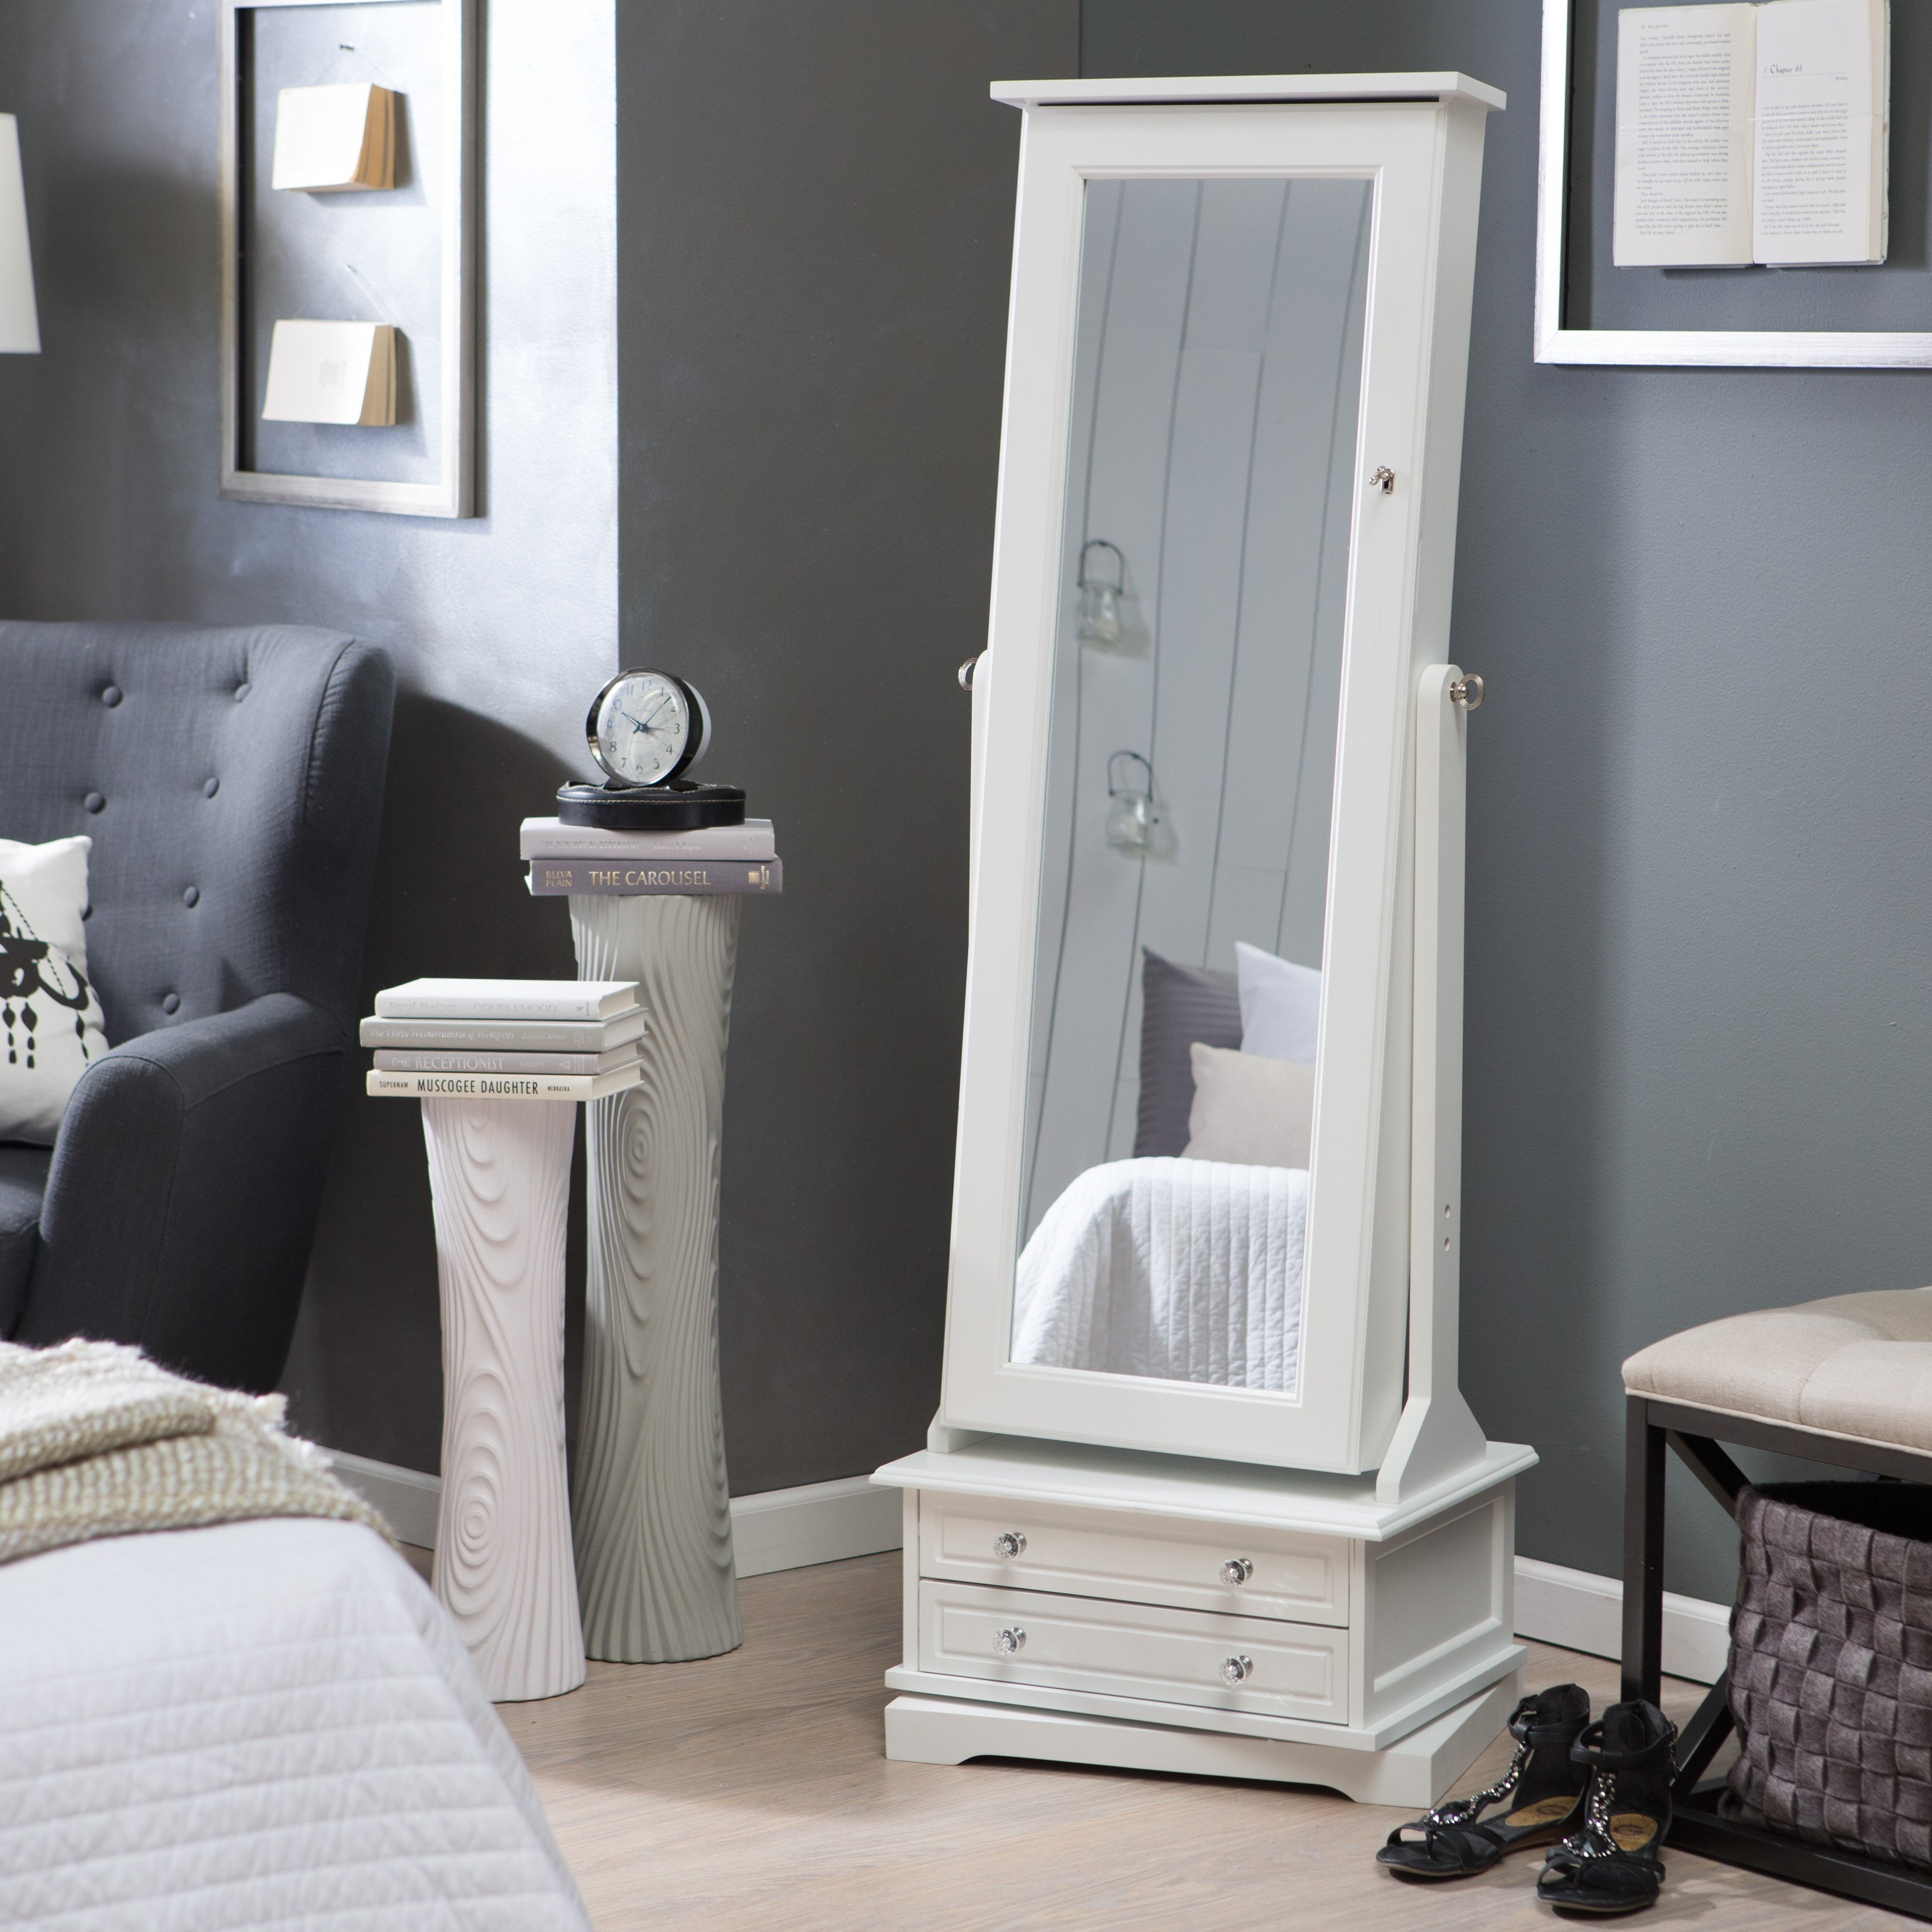 Full Length Mirror Ideas 15 Collection Of Free Standing Long Mirror Mirror Ideas